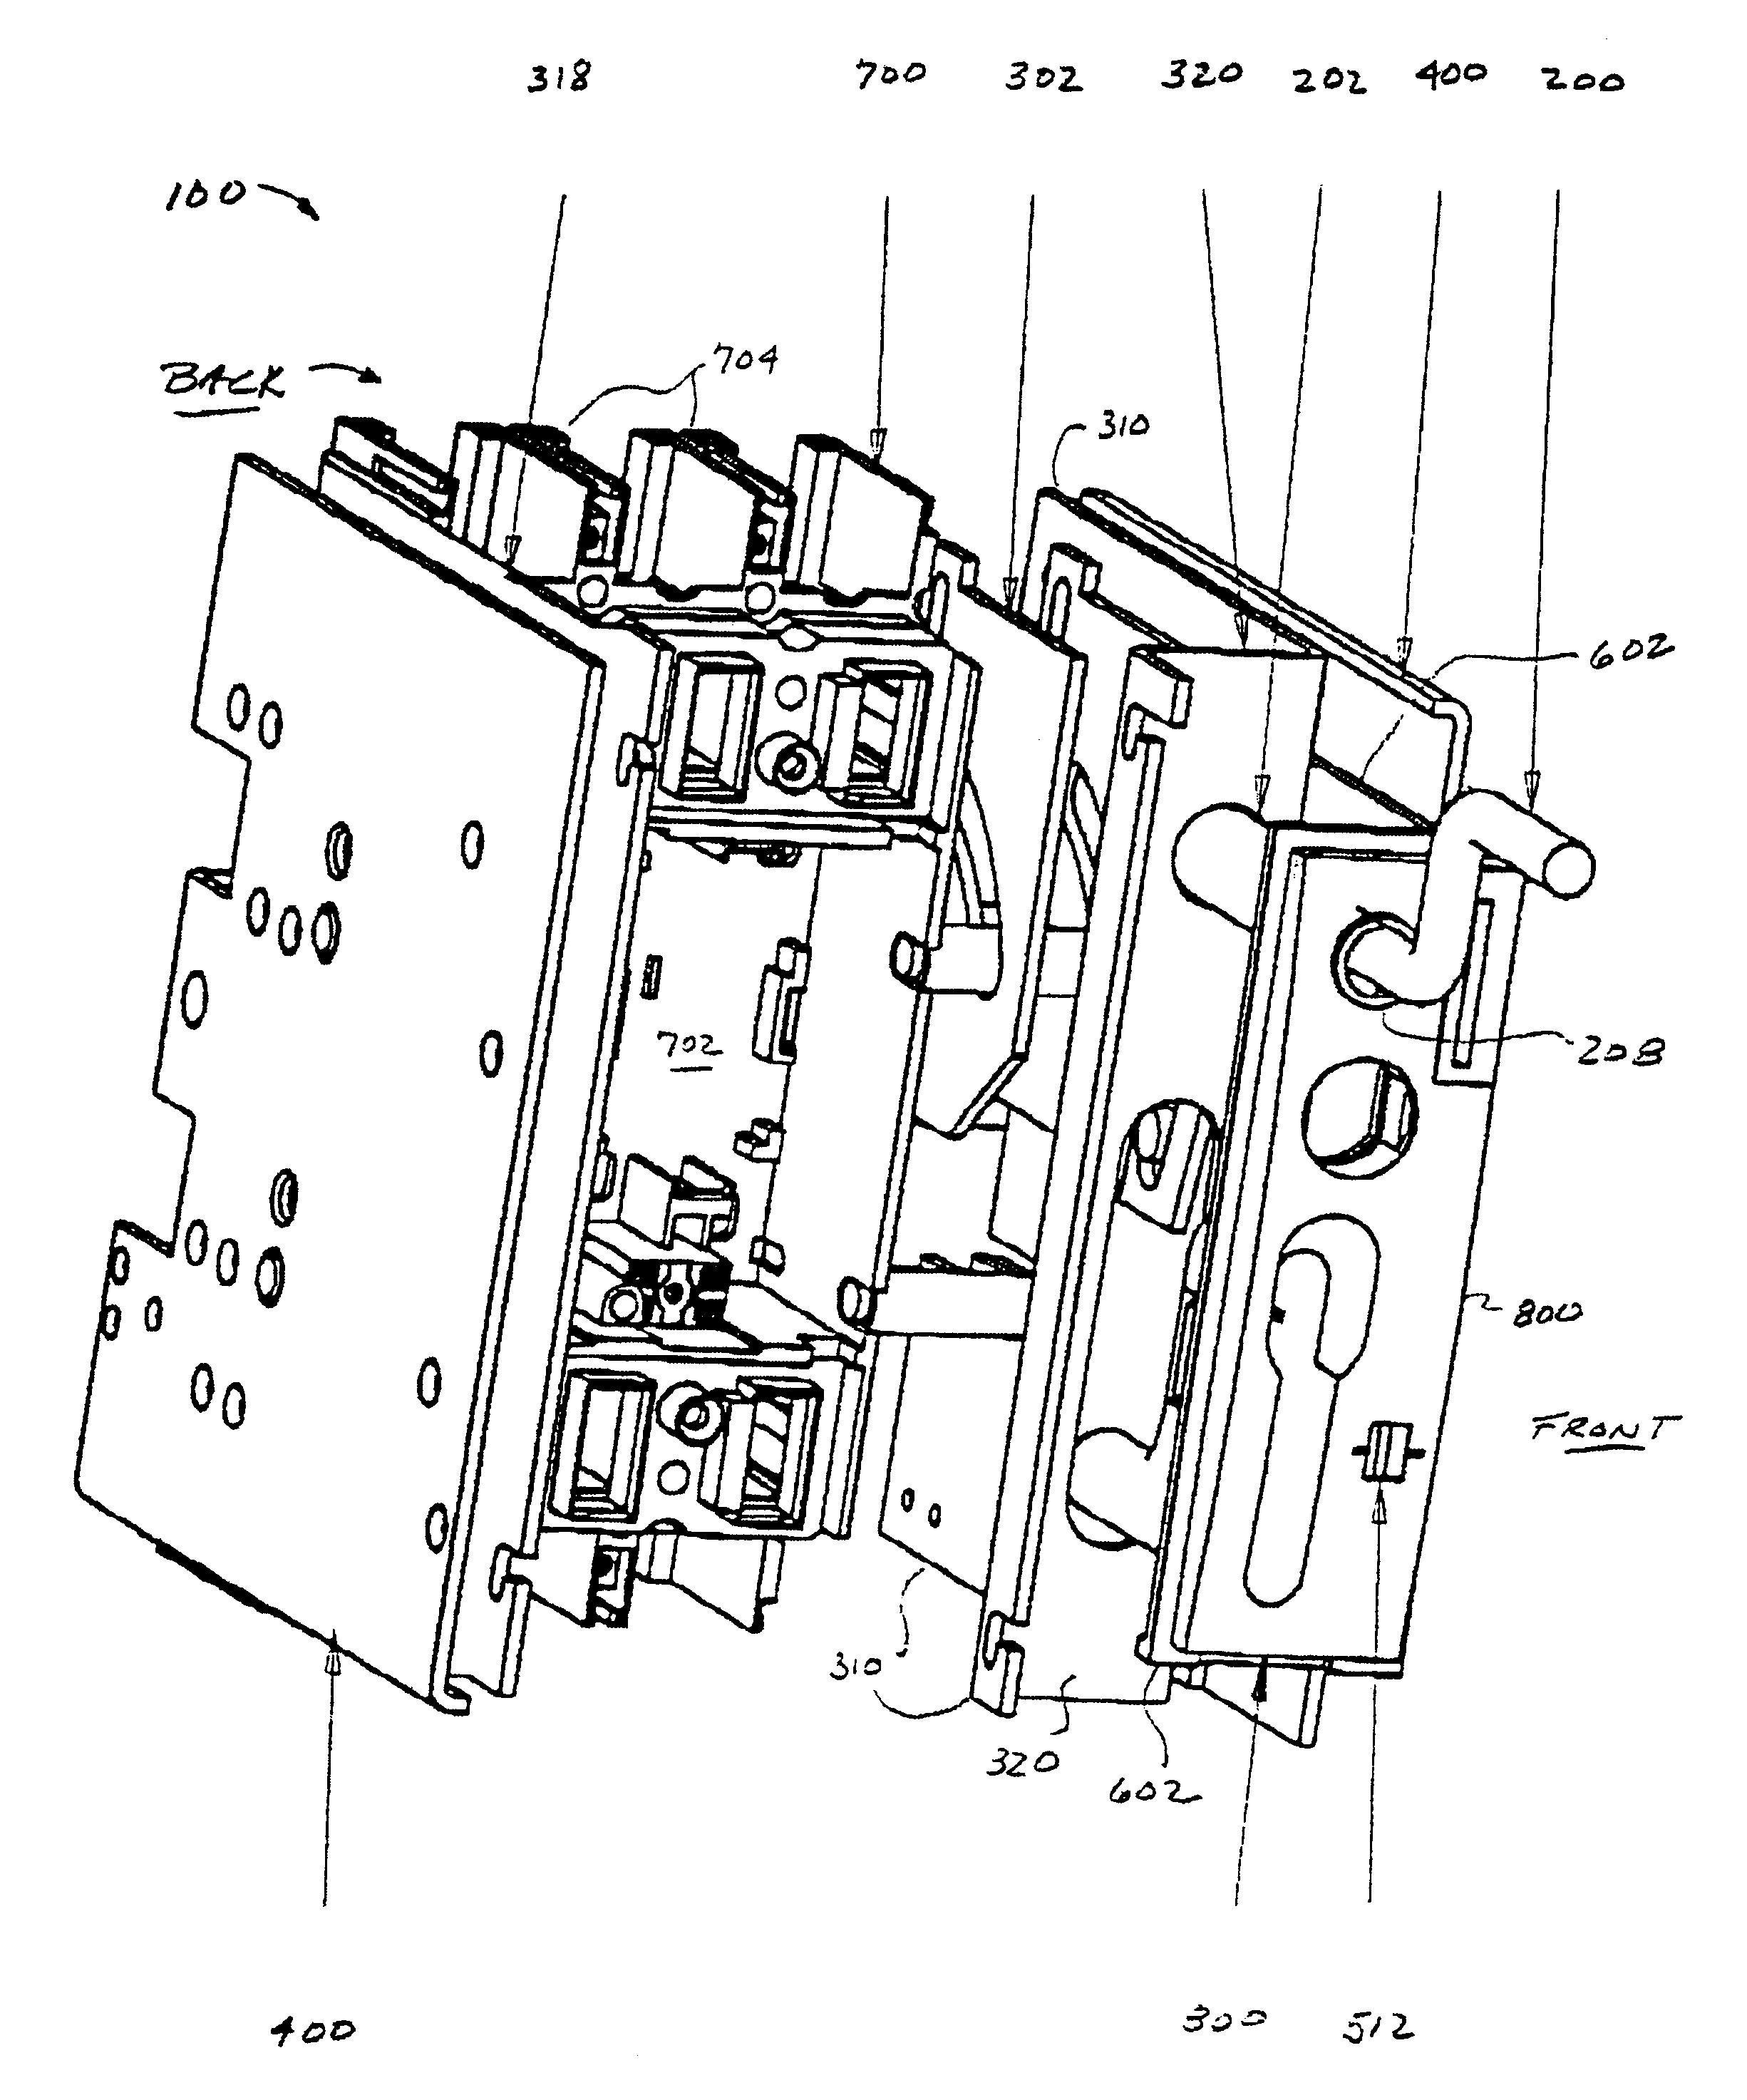 patent us6476335 - draw-out mechanism for molded case circuit breakers